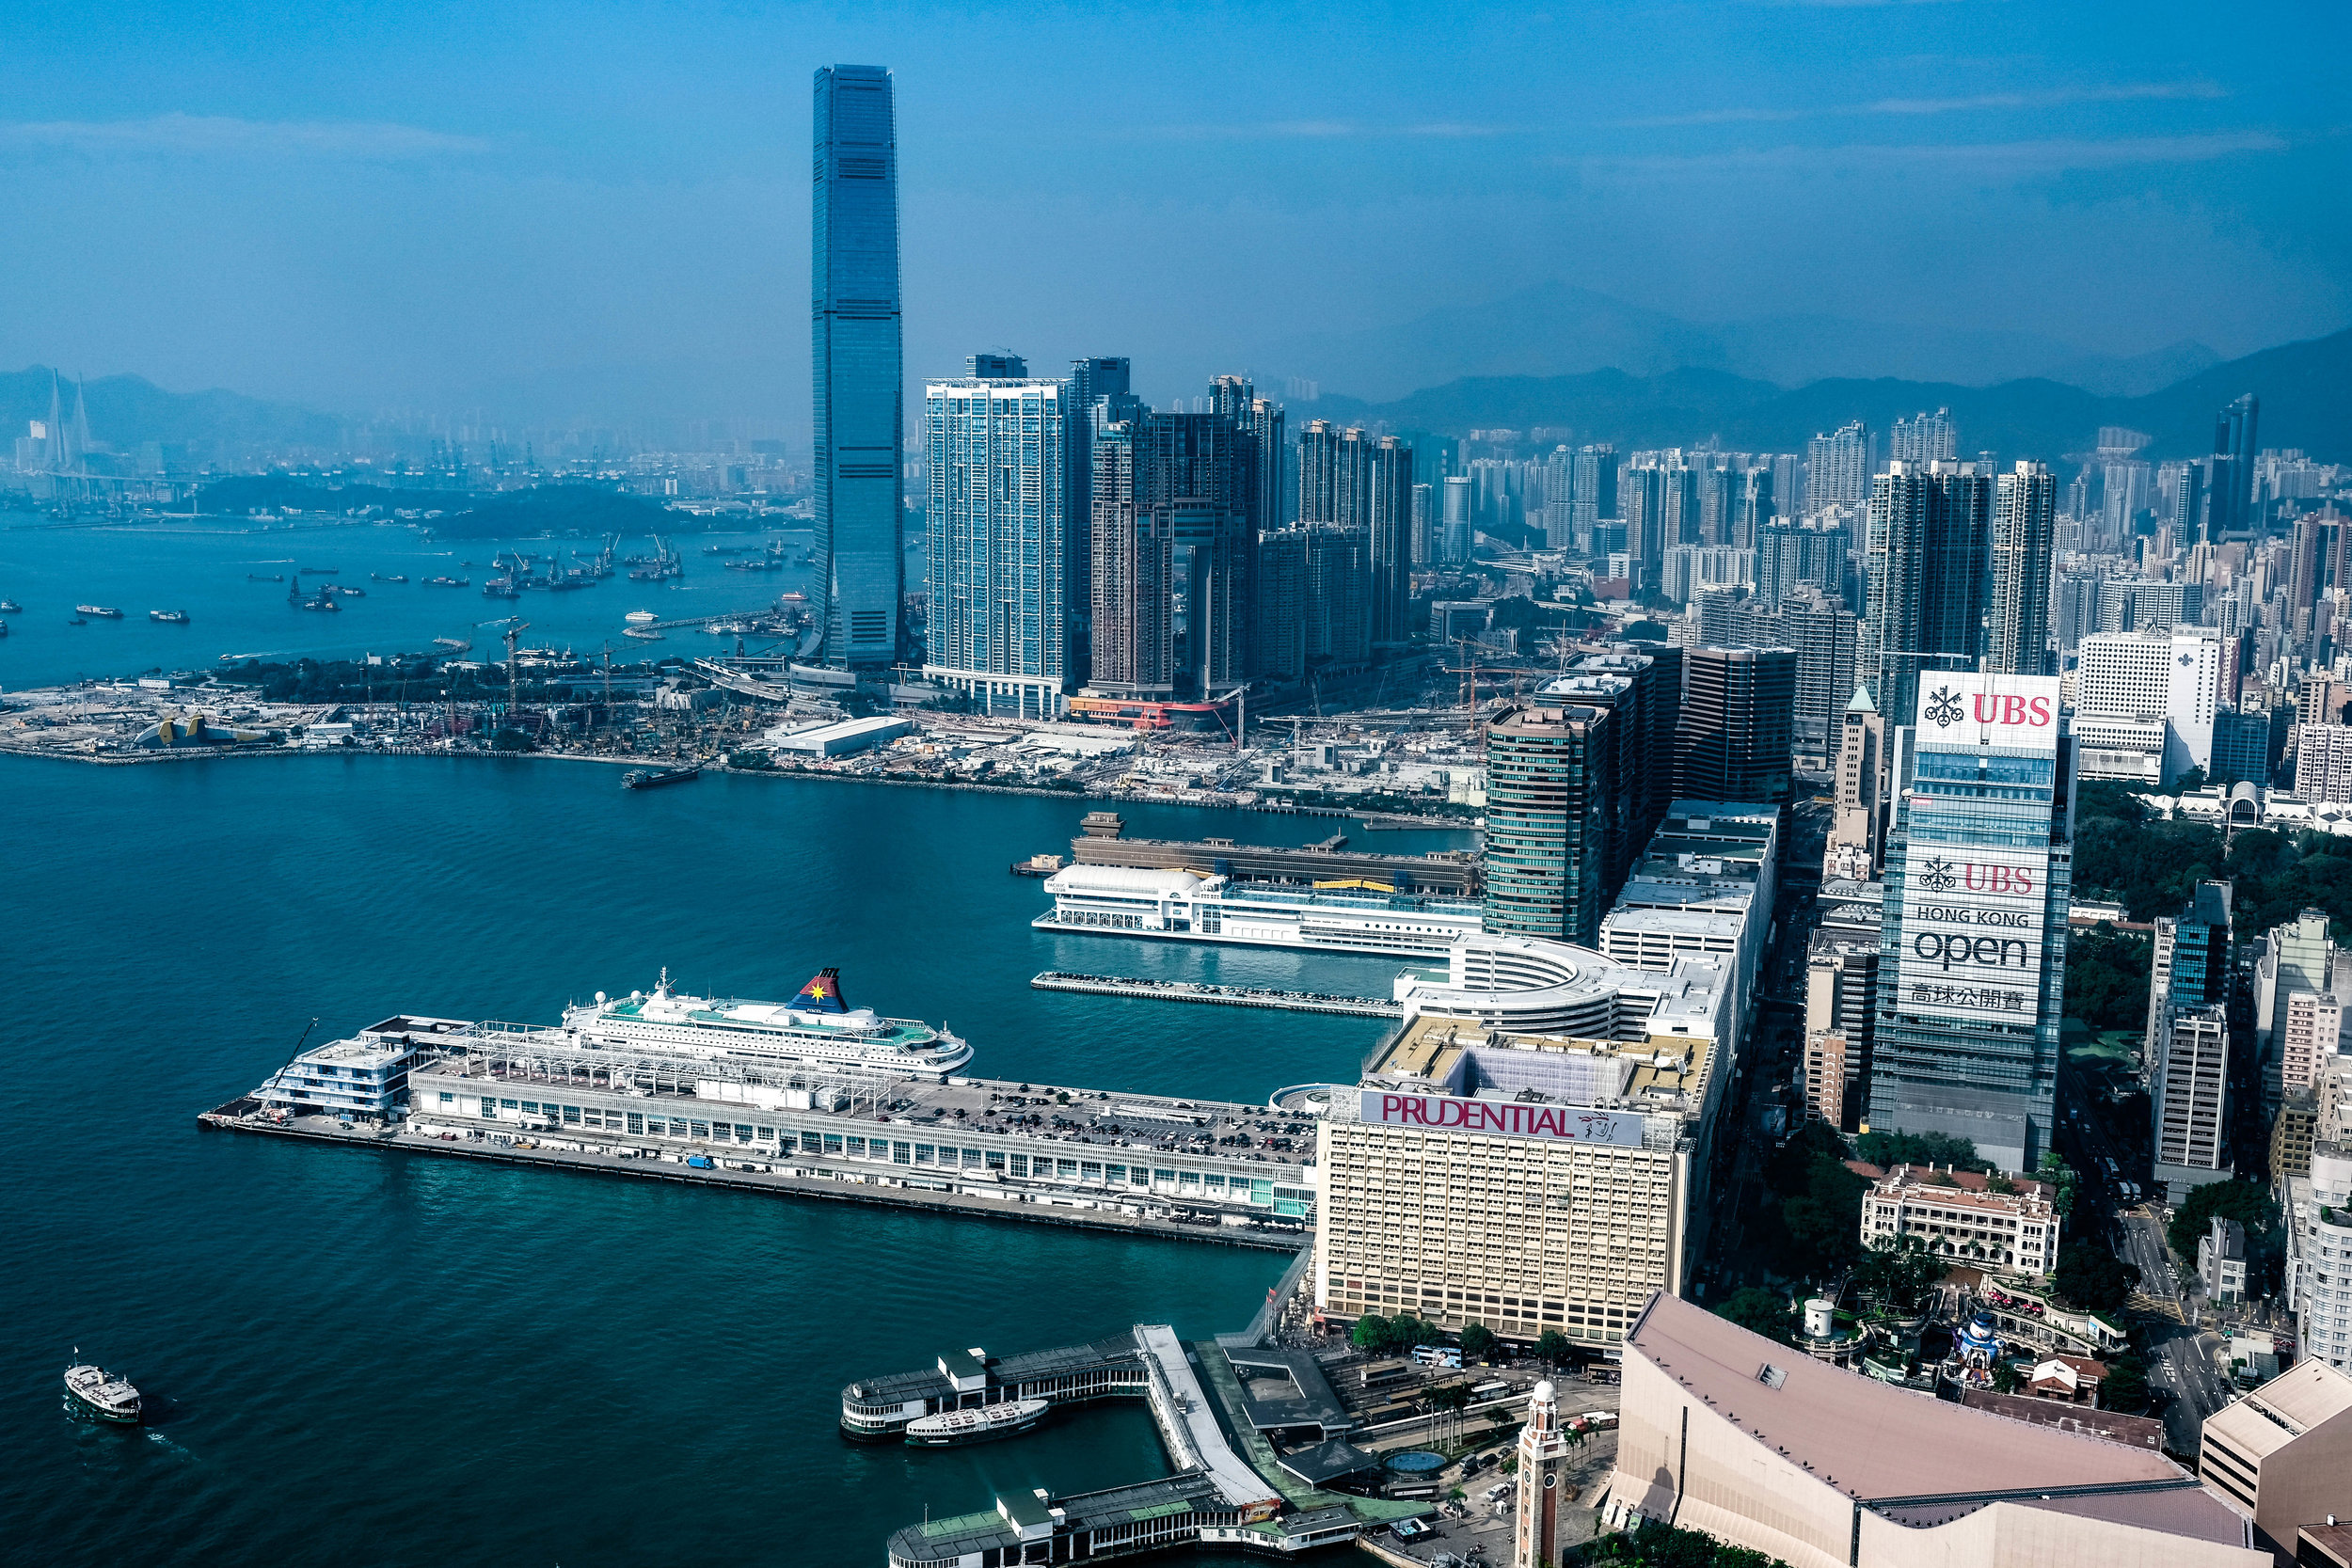 A view from the South East corner of Kowloon, on the mainland.